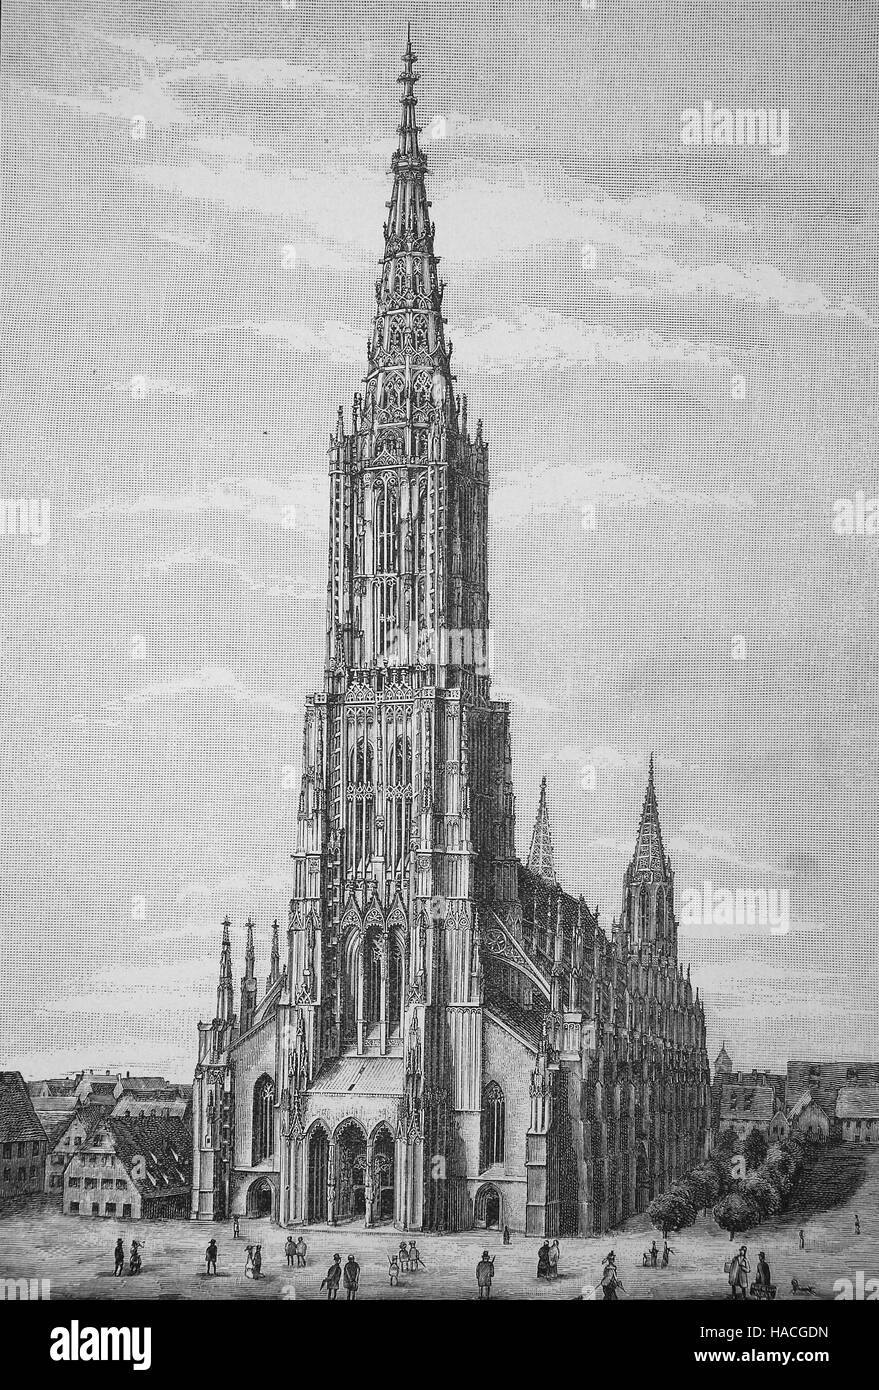 Ulm Minster, Ulmer Muenster, is a Lutheran church located in Ulm, Germany, 1880, historic illustration, woodcut Stock Photo